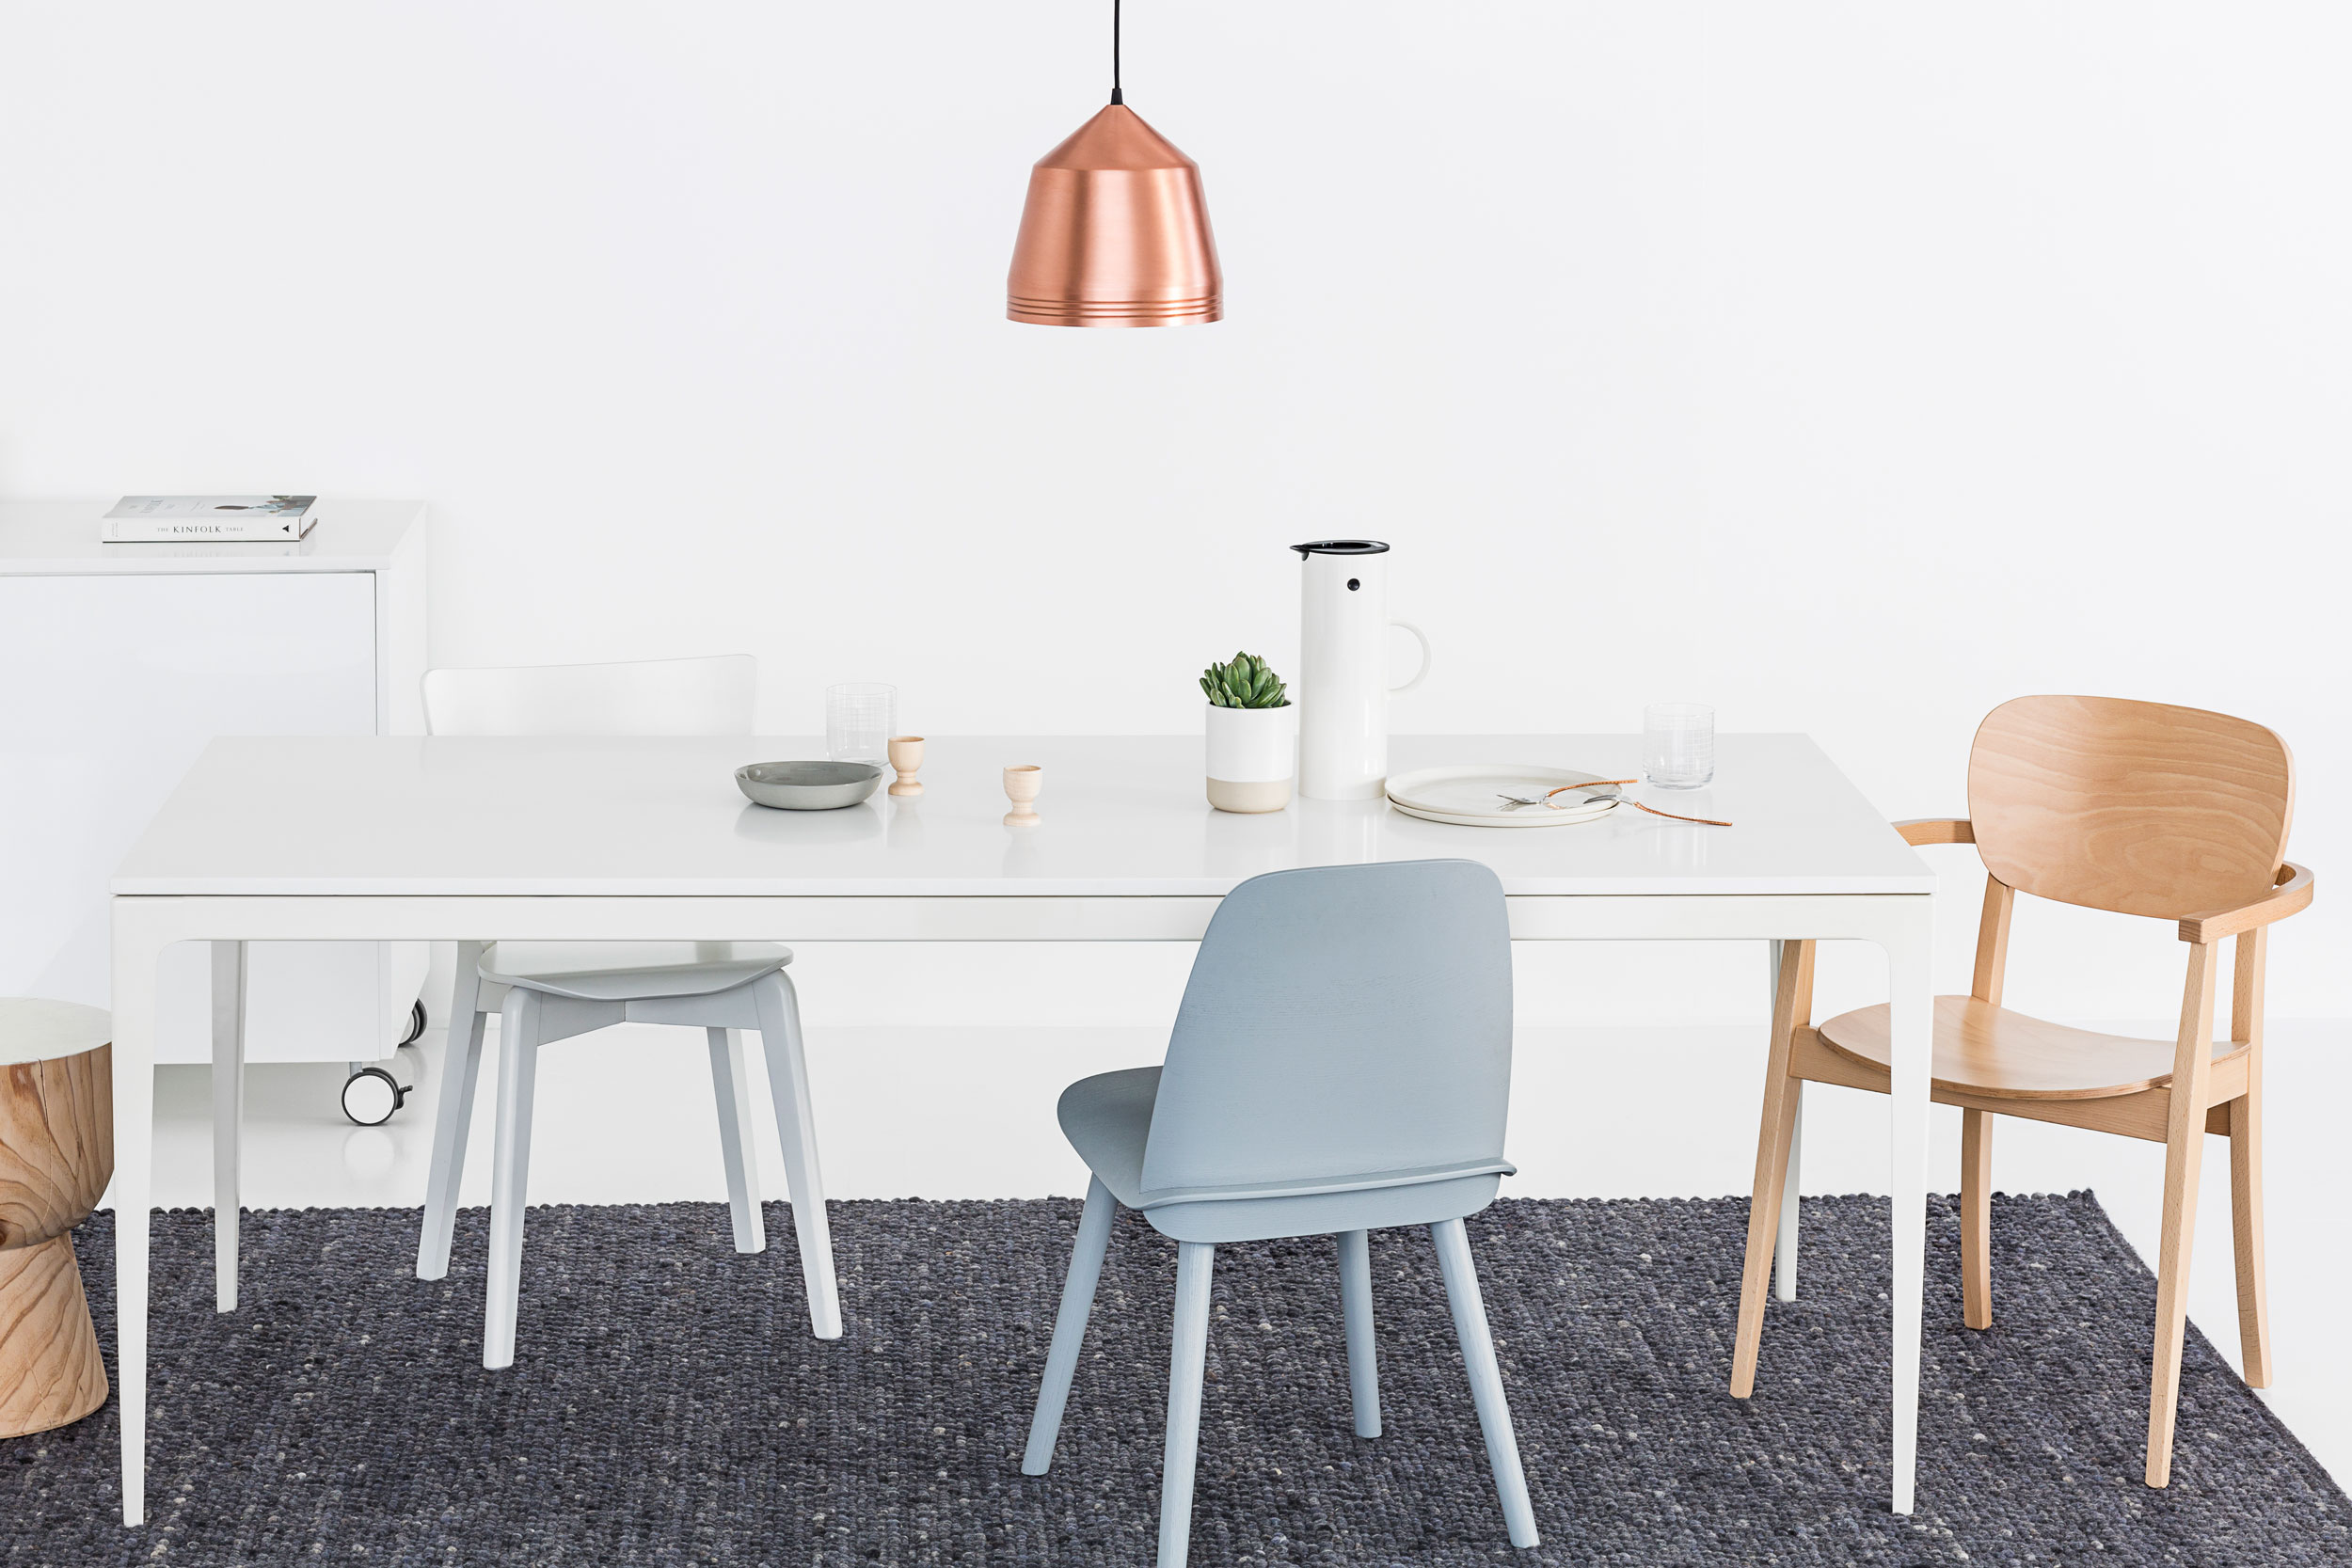 Urbi_table_stone_white_cesarstone_mutto_chairs_sarah_anderson_photography